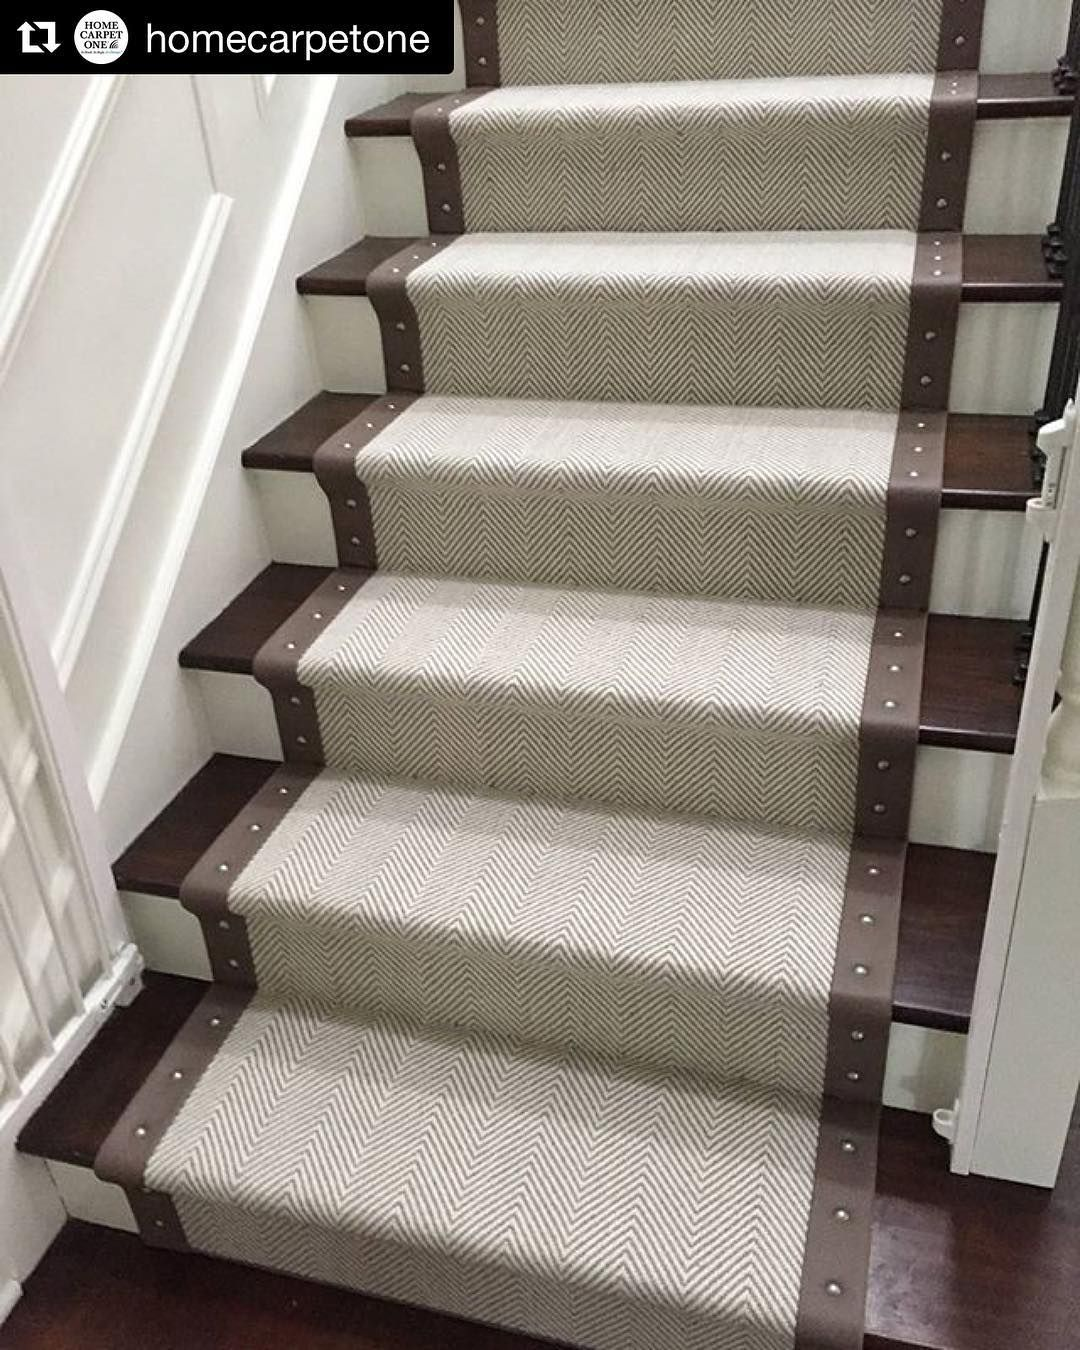 Beautiful Stair Runner Made With Kane In Stock Peter Island Carpet